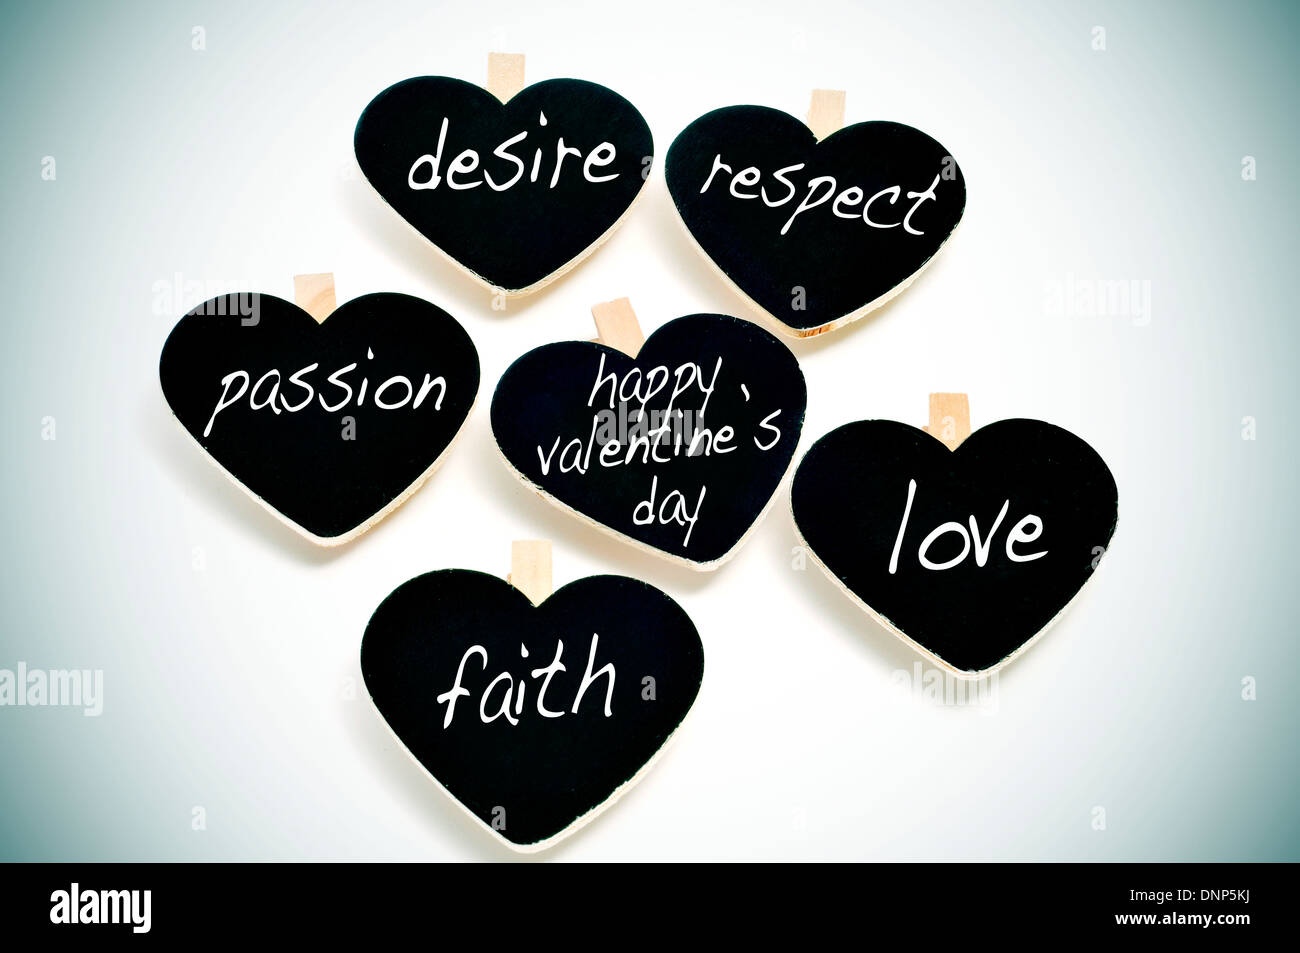 some heart-shaped blackboards with different words written on them related to love concept, such as respect or passion, and the - Stock Image